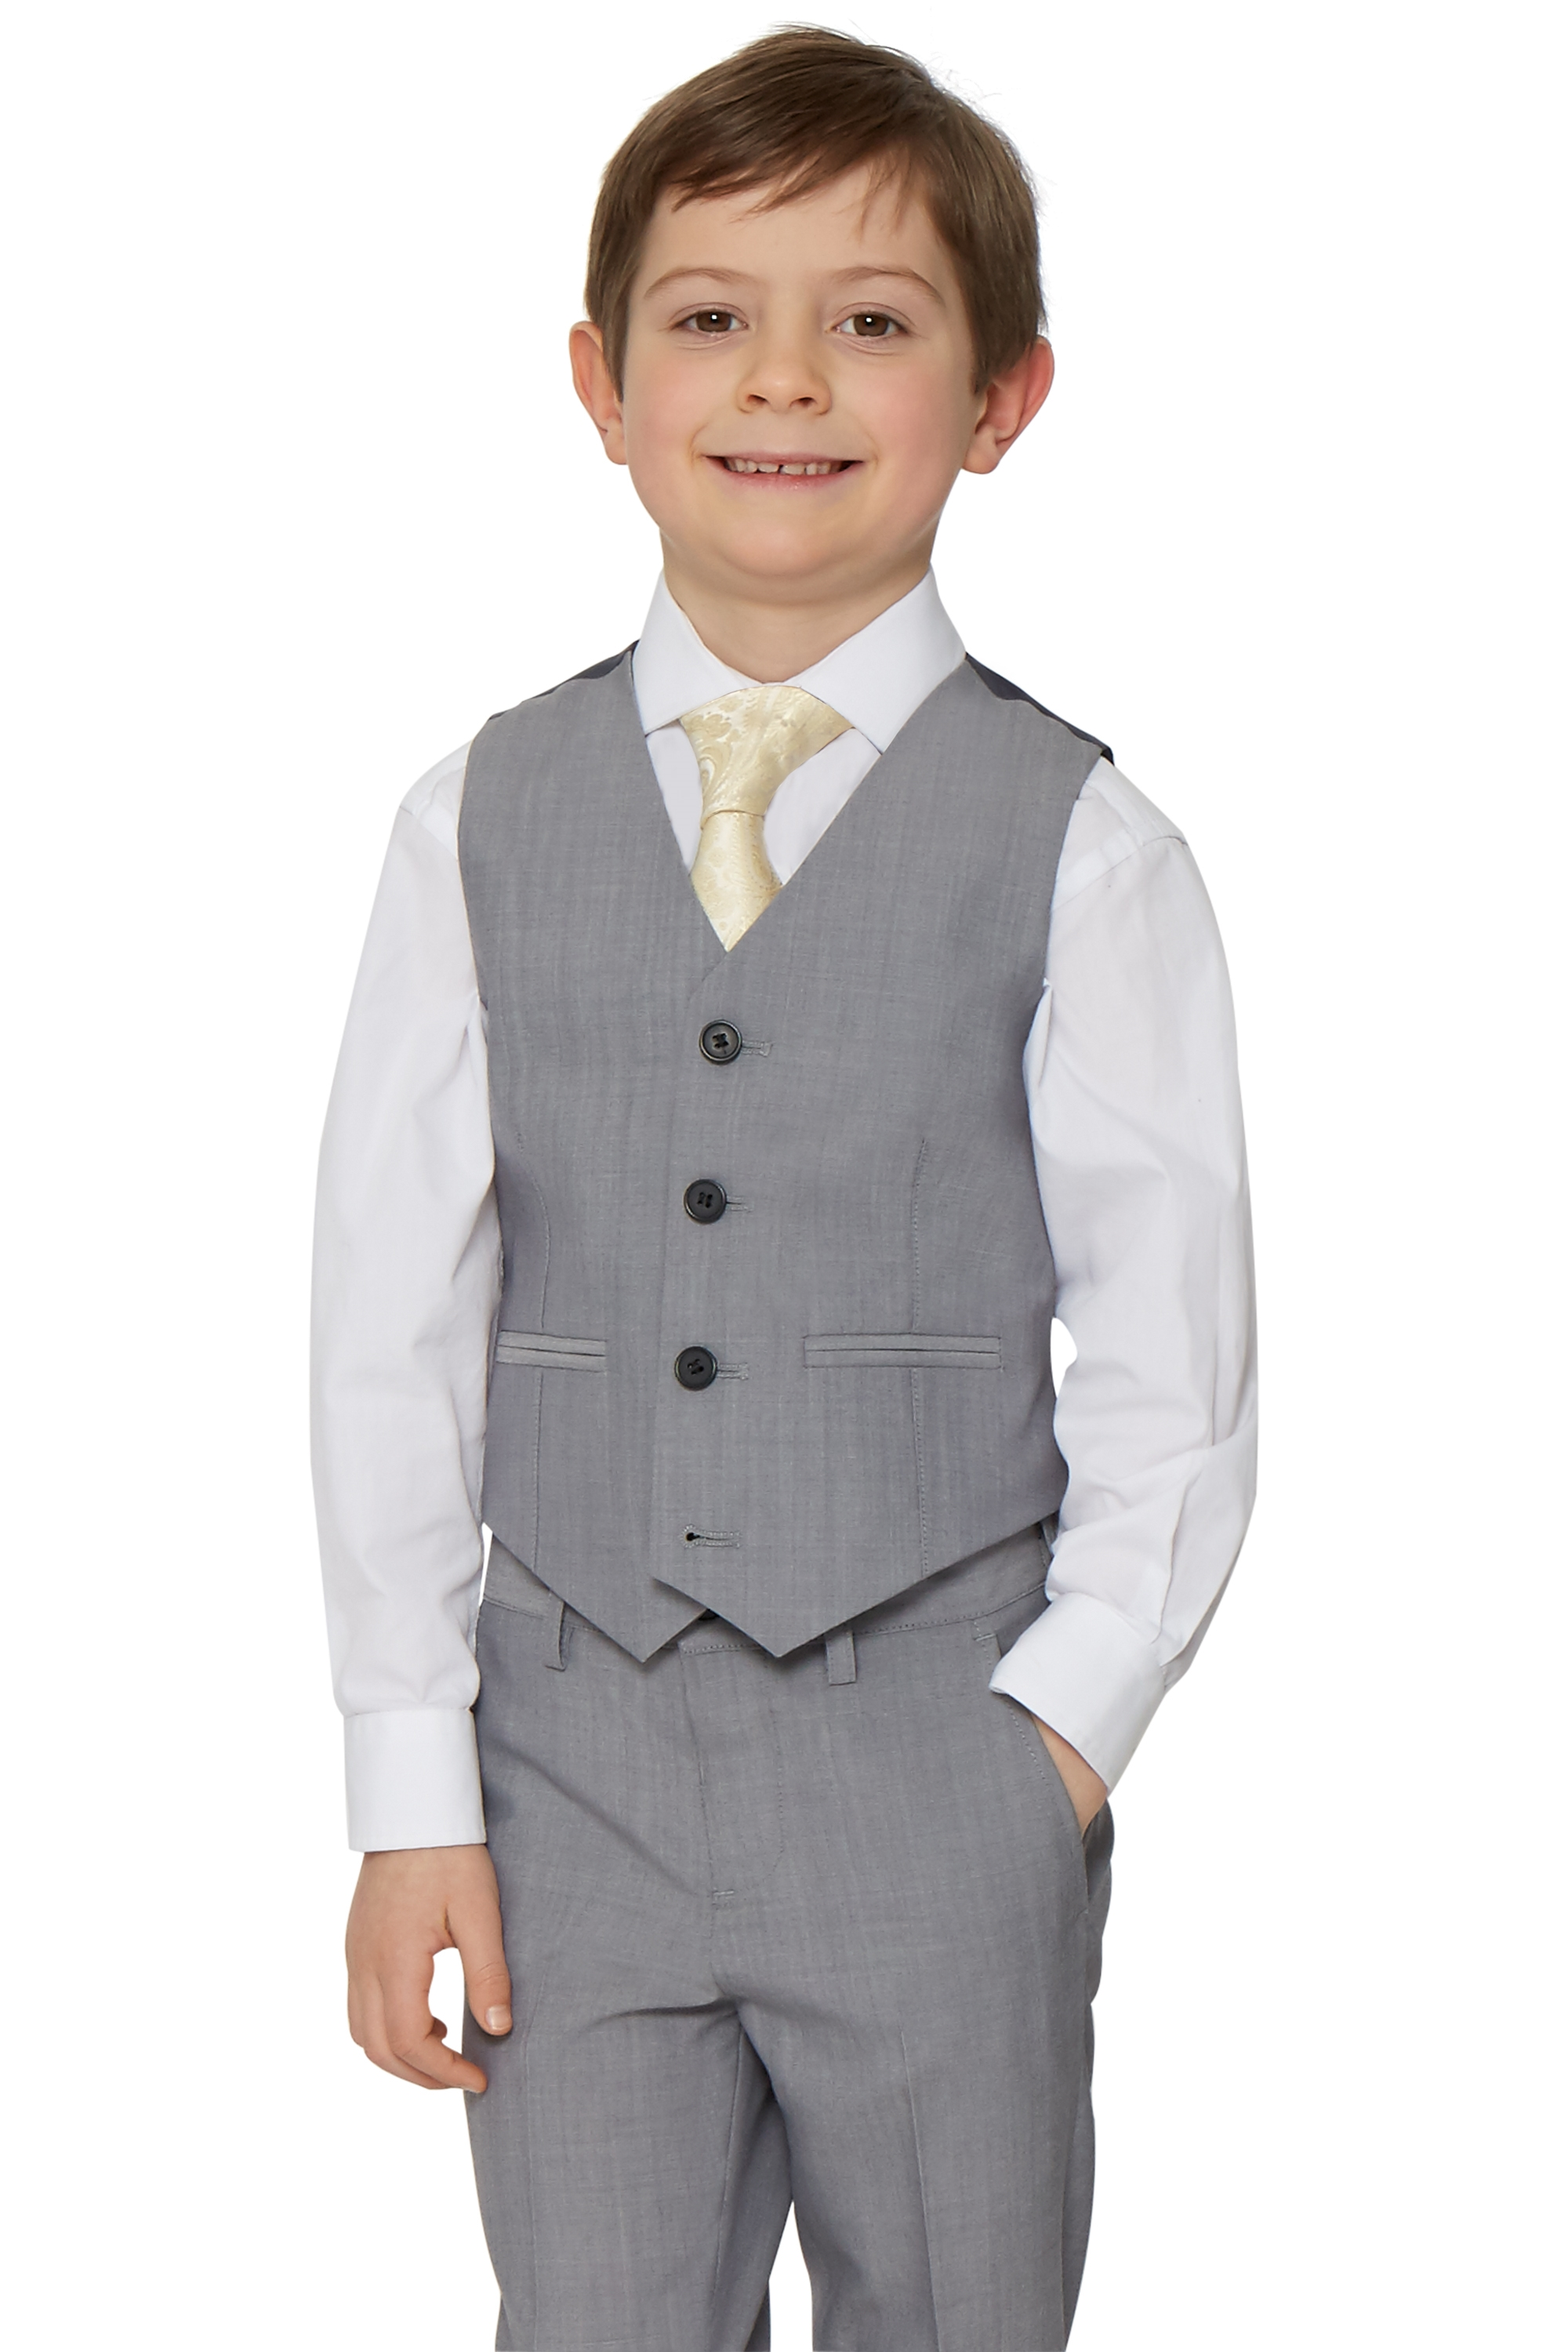 Silver Waistcoat French 2 Connection Boys Pockets Kids Formal Grey H2WIYED9